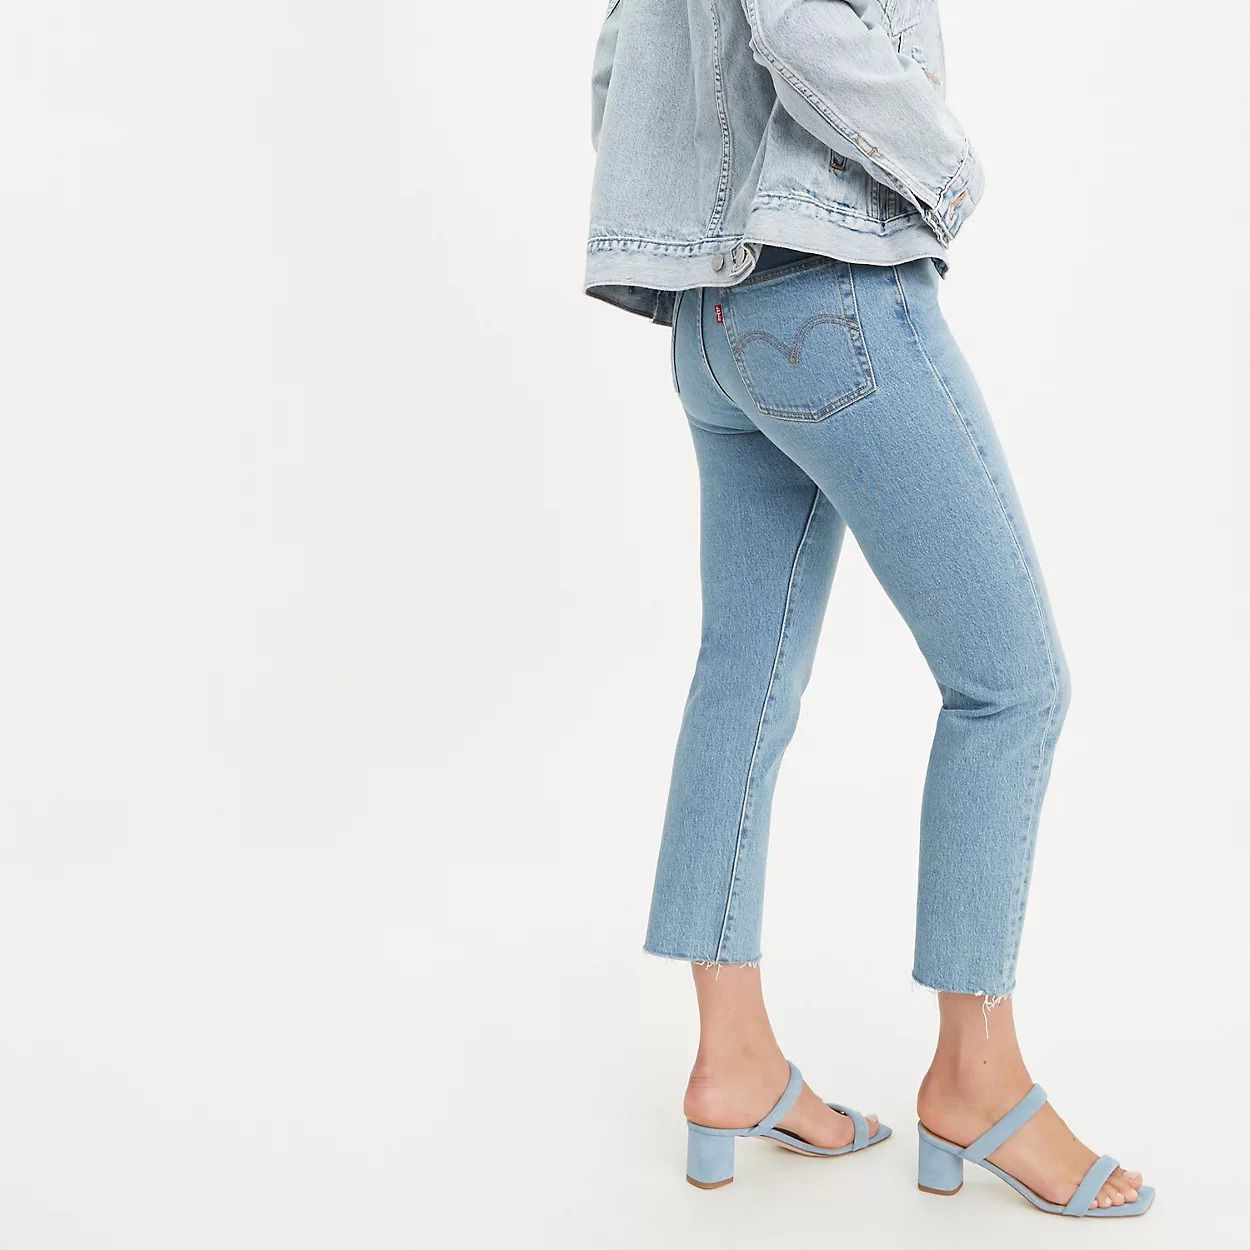 Levi's Straight Fit Wedgie Jeans, Frayed Hem